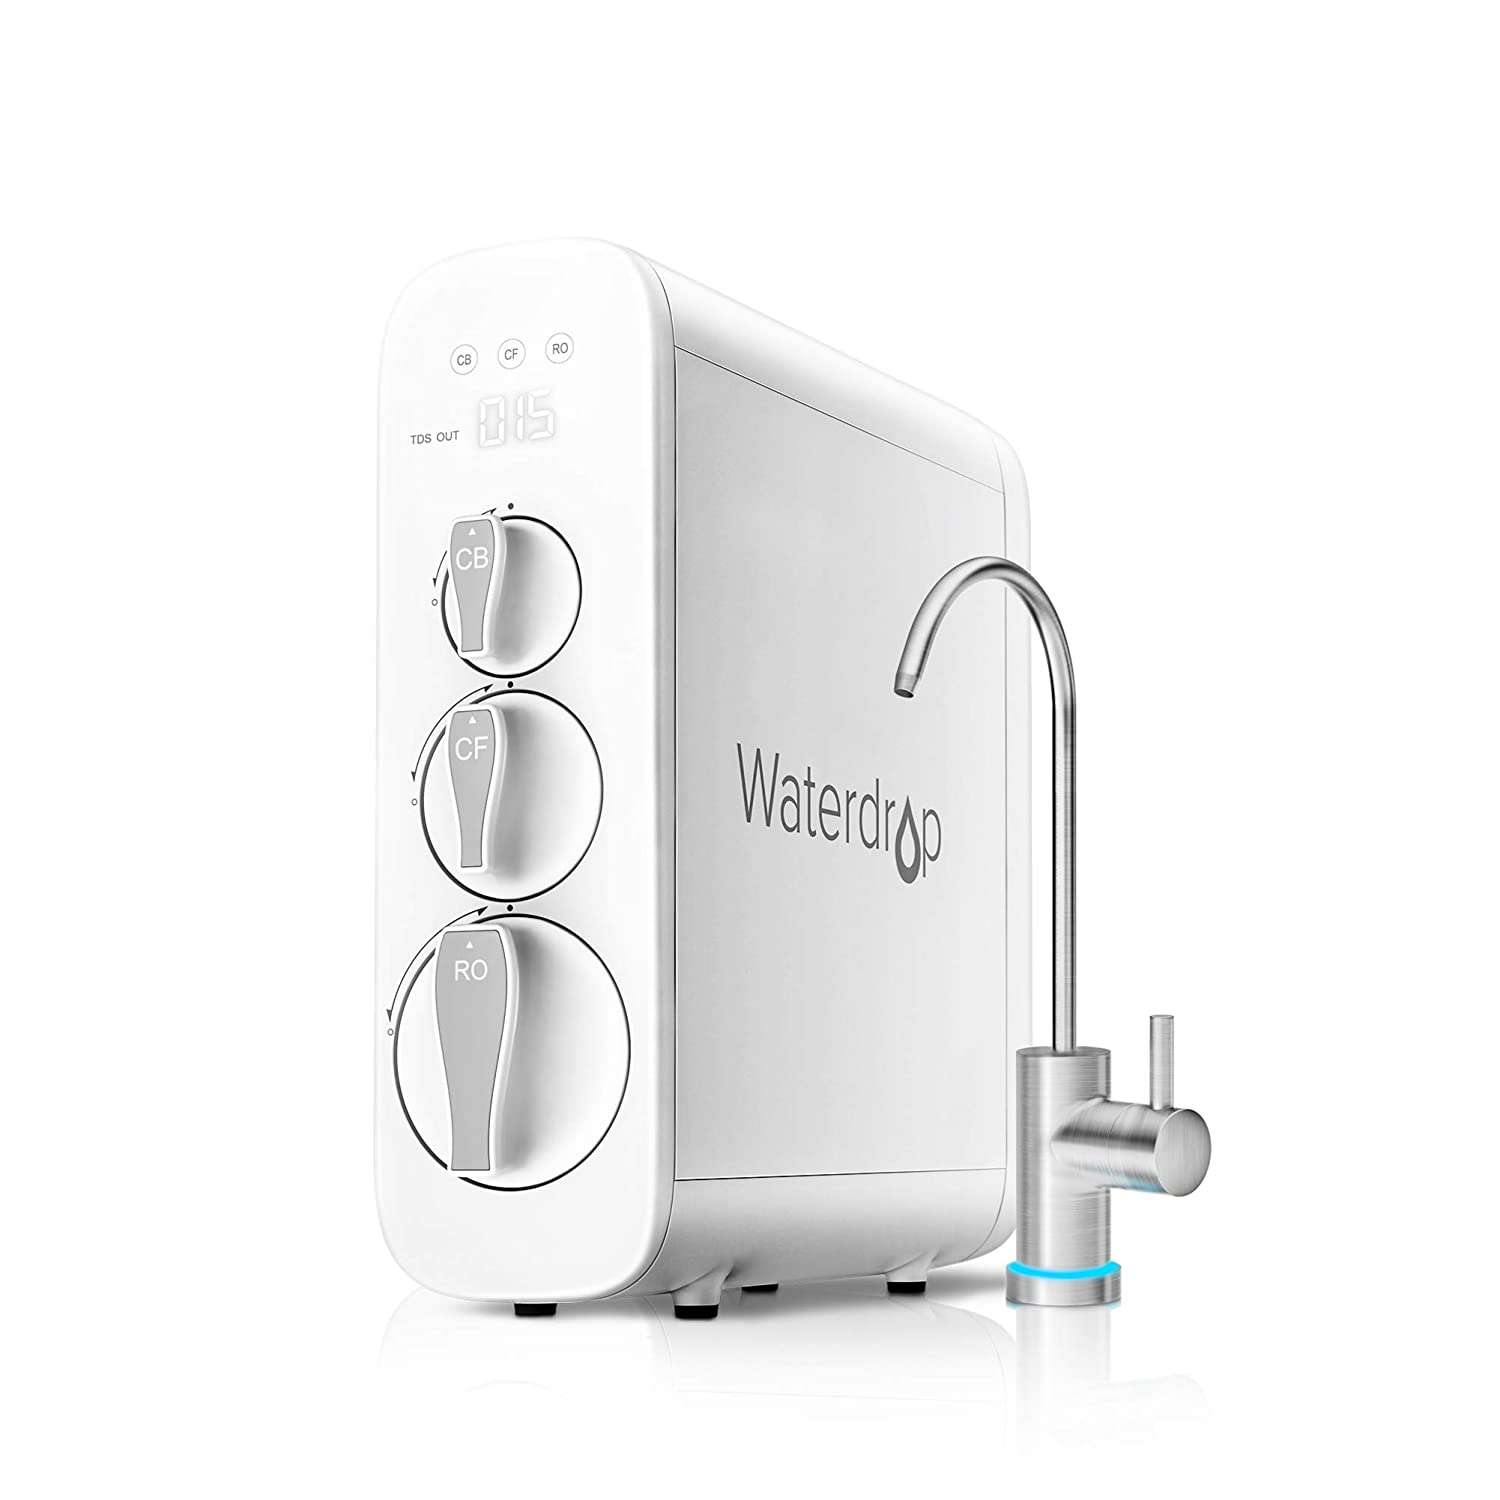 Waterdrop Reverse Osmosis Water Filtration System